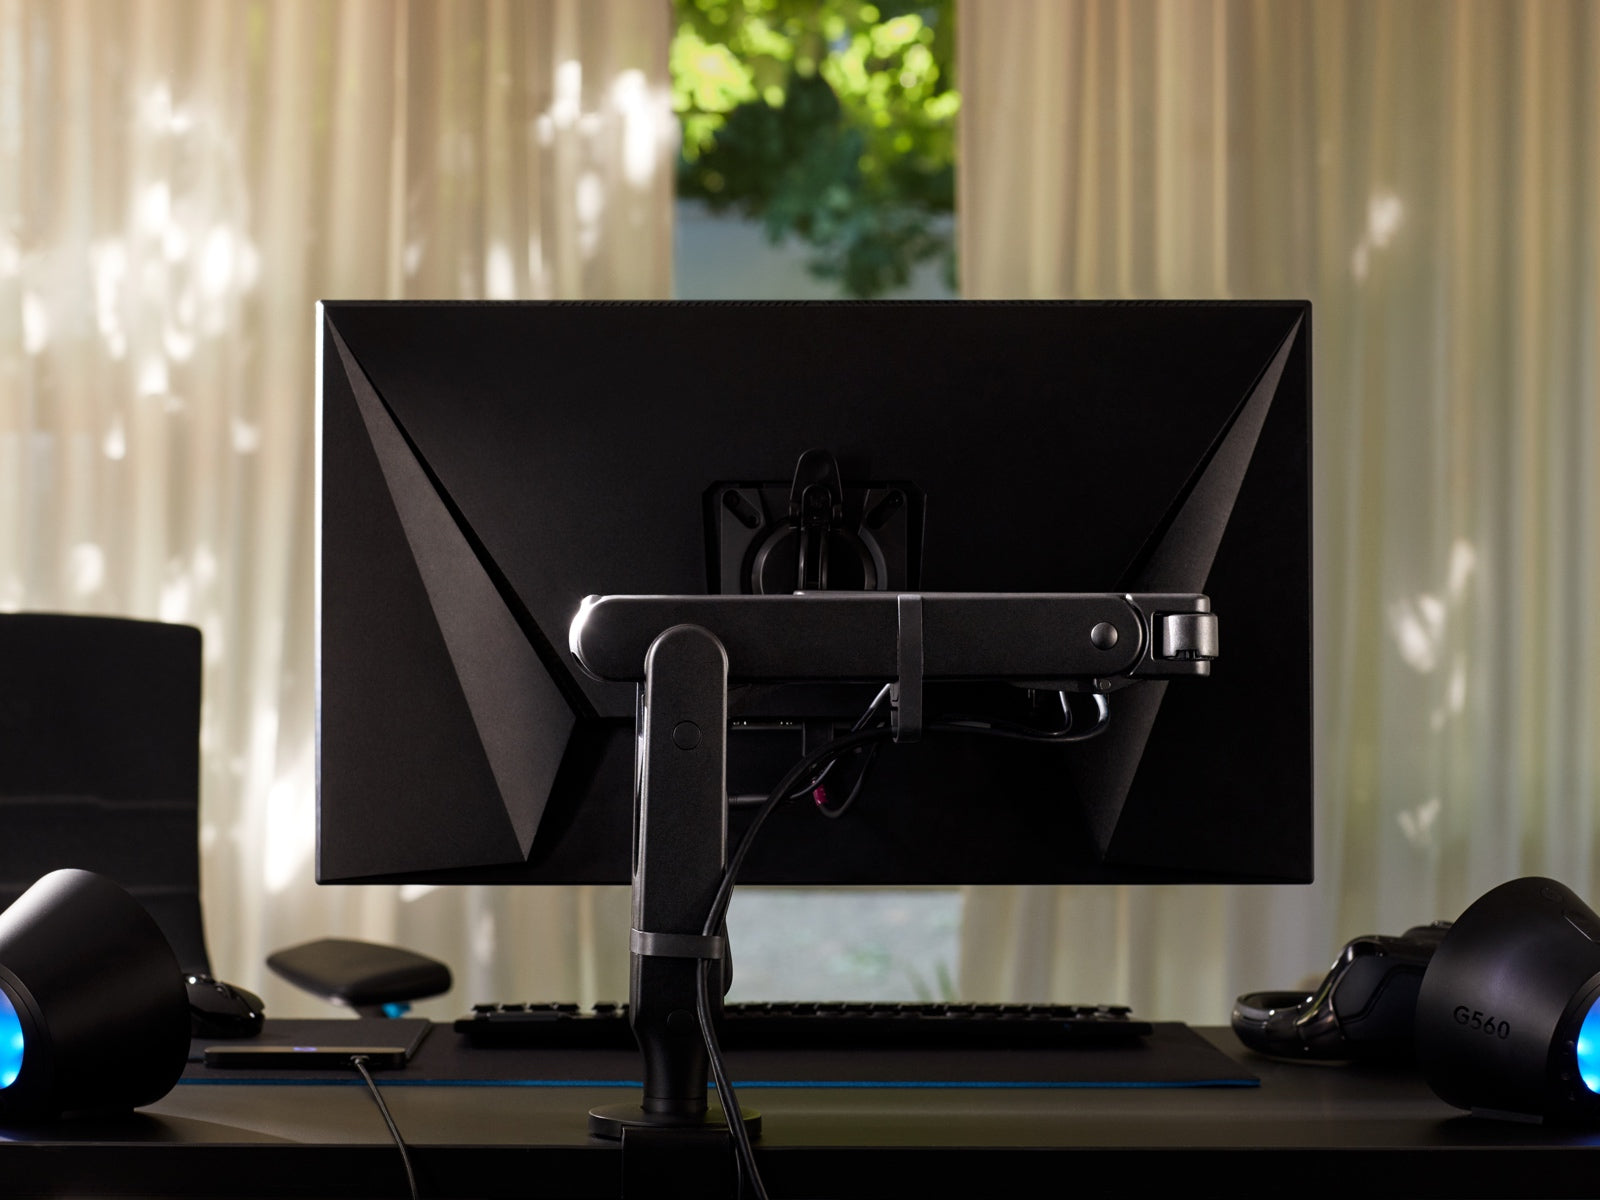 The back of a monitor attached to the Ollin Monitor Arm highlights the cable management system.